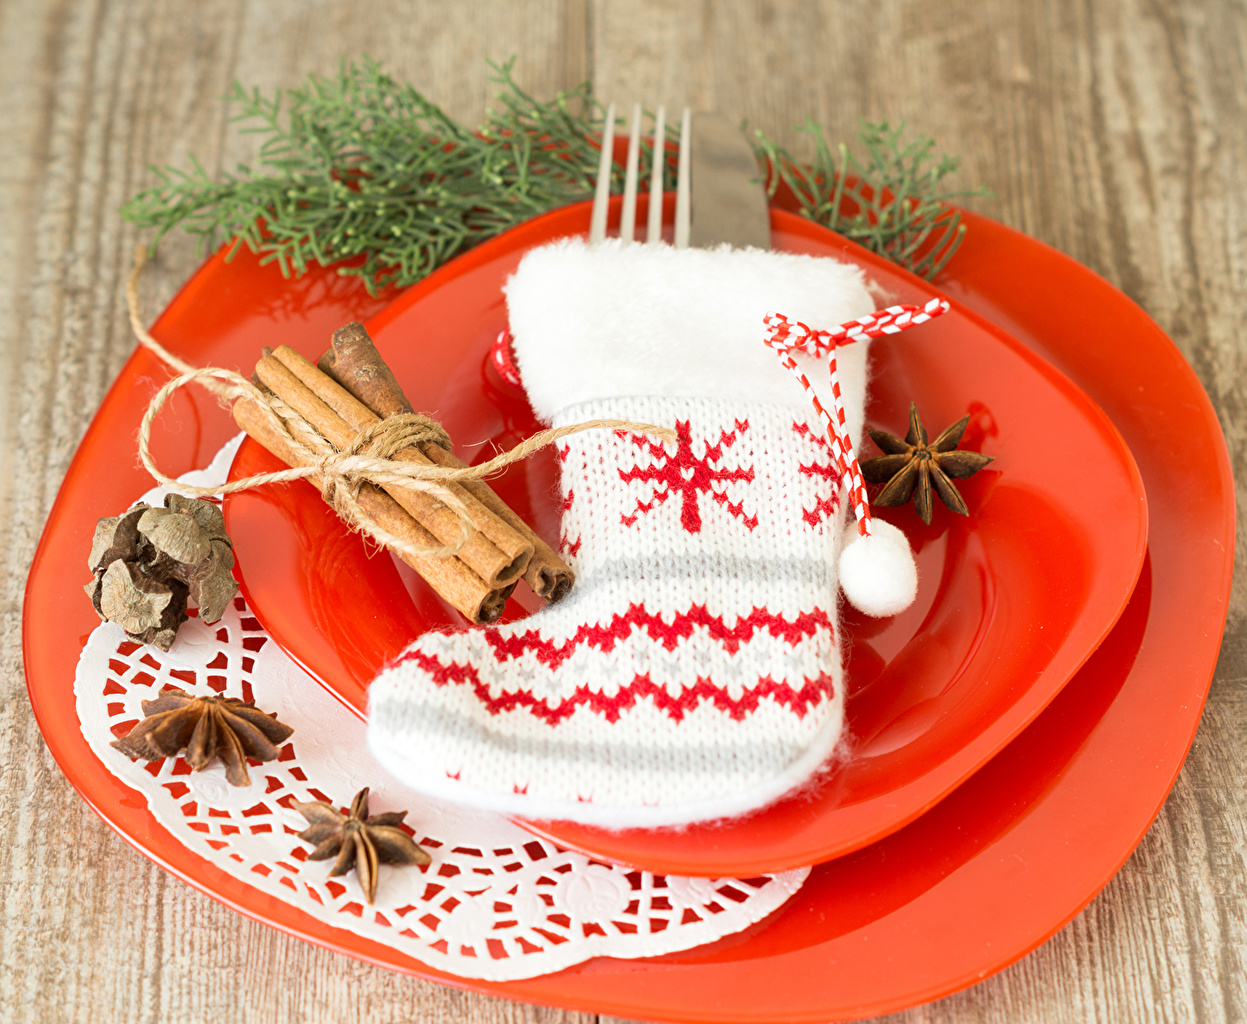 Picture New year Wearing boots Socks Star anise Illicium Cinnamon Plate Holidays Christmas